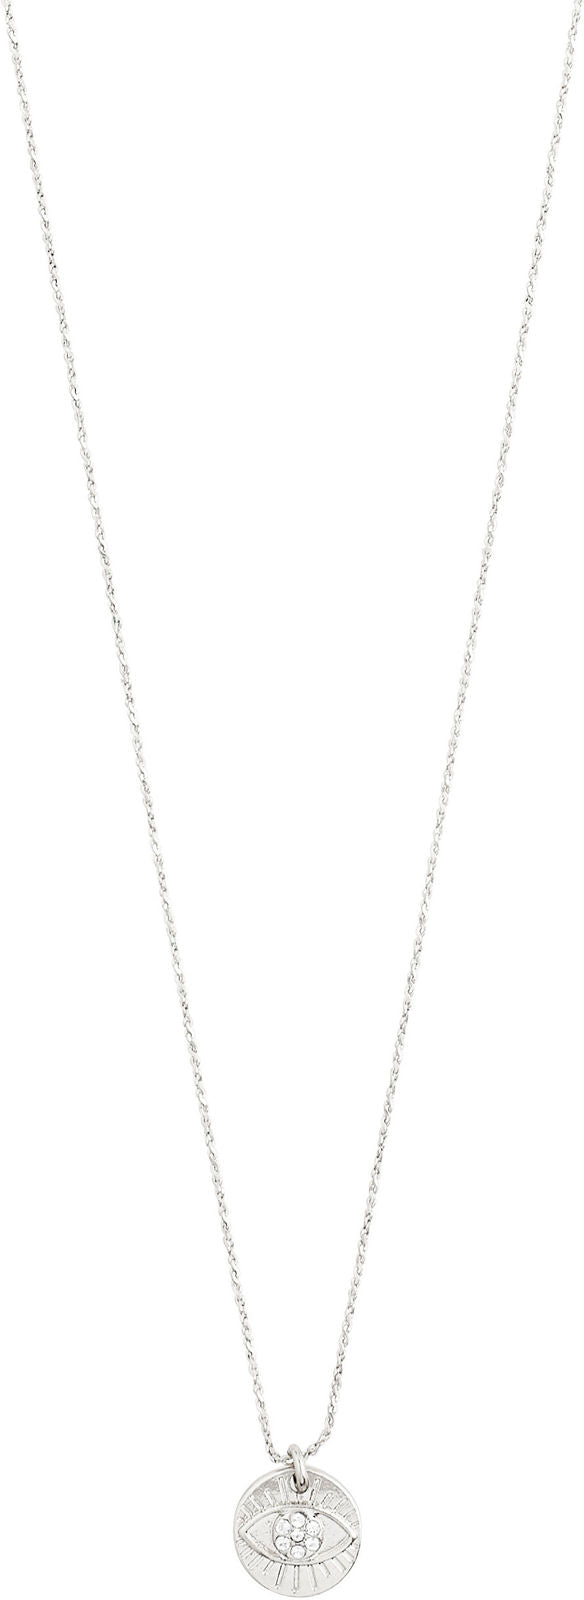 Cherished Silver Crystal Necklace